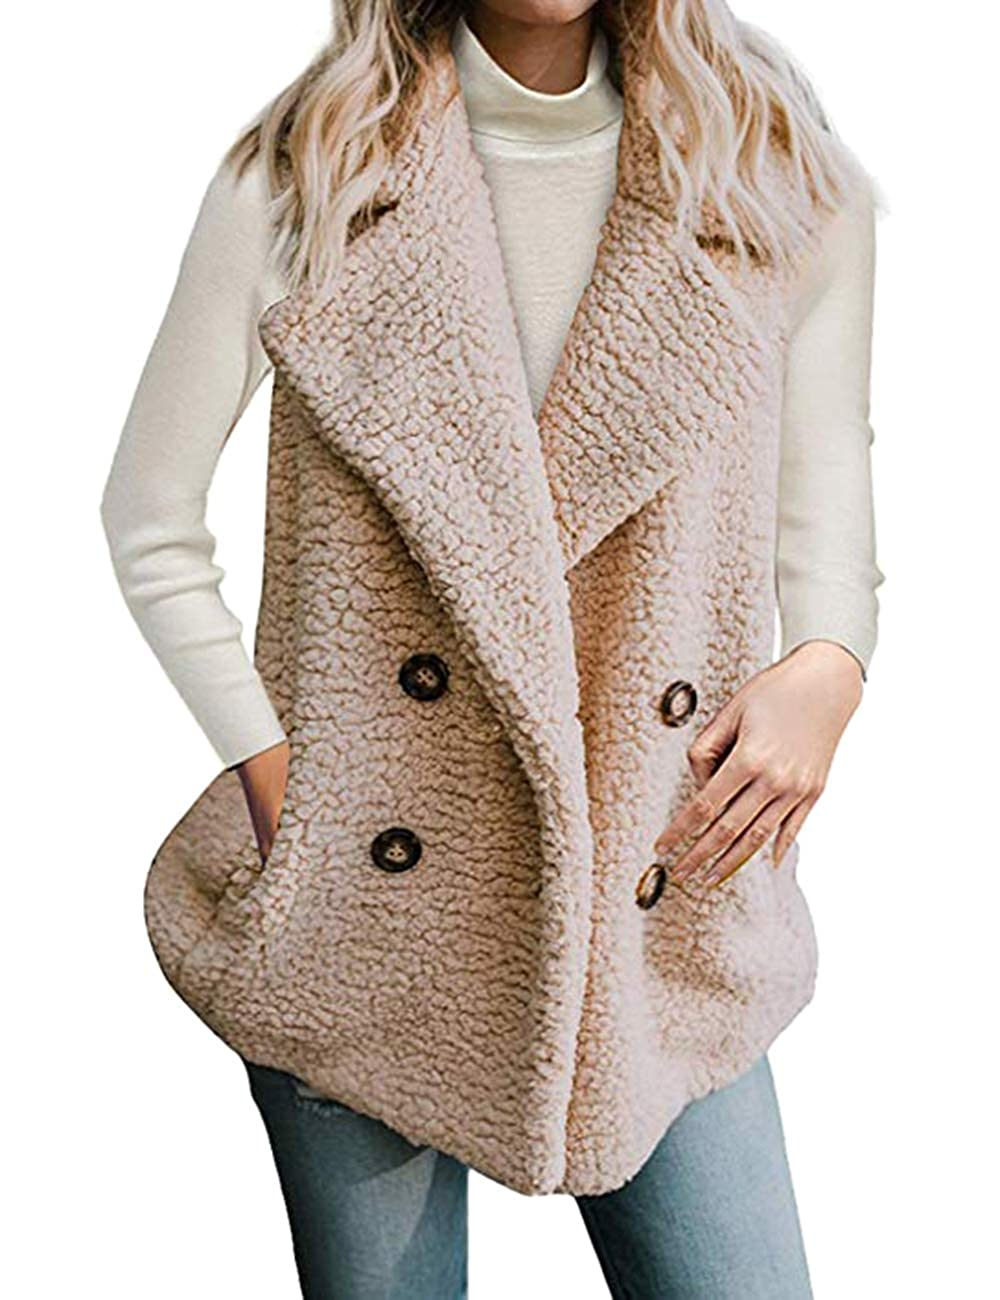 SEBOWEL Women Casual Vest Fuzzy Fleece Cardigan Pocket Sleeveless Outwear Jacket